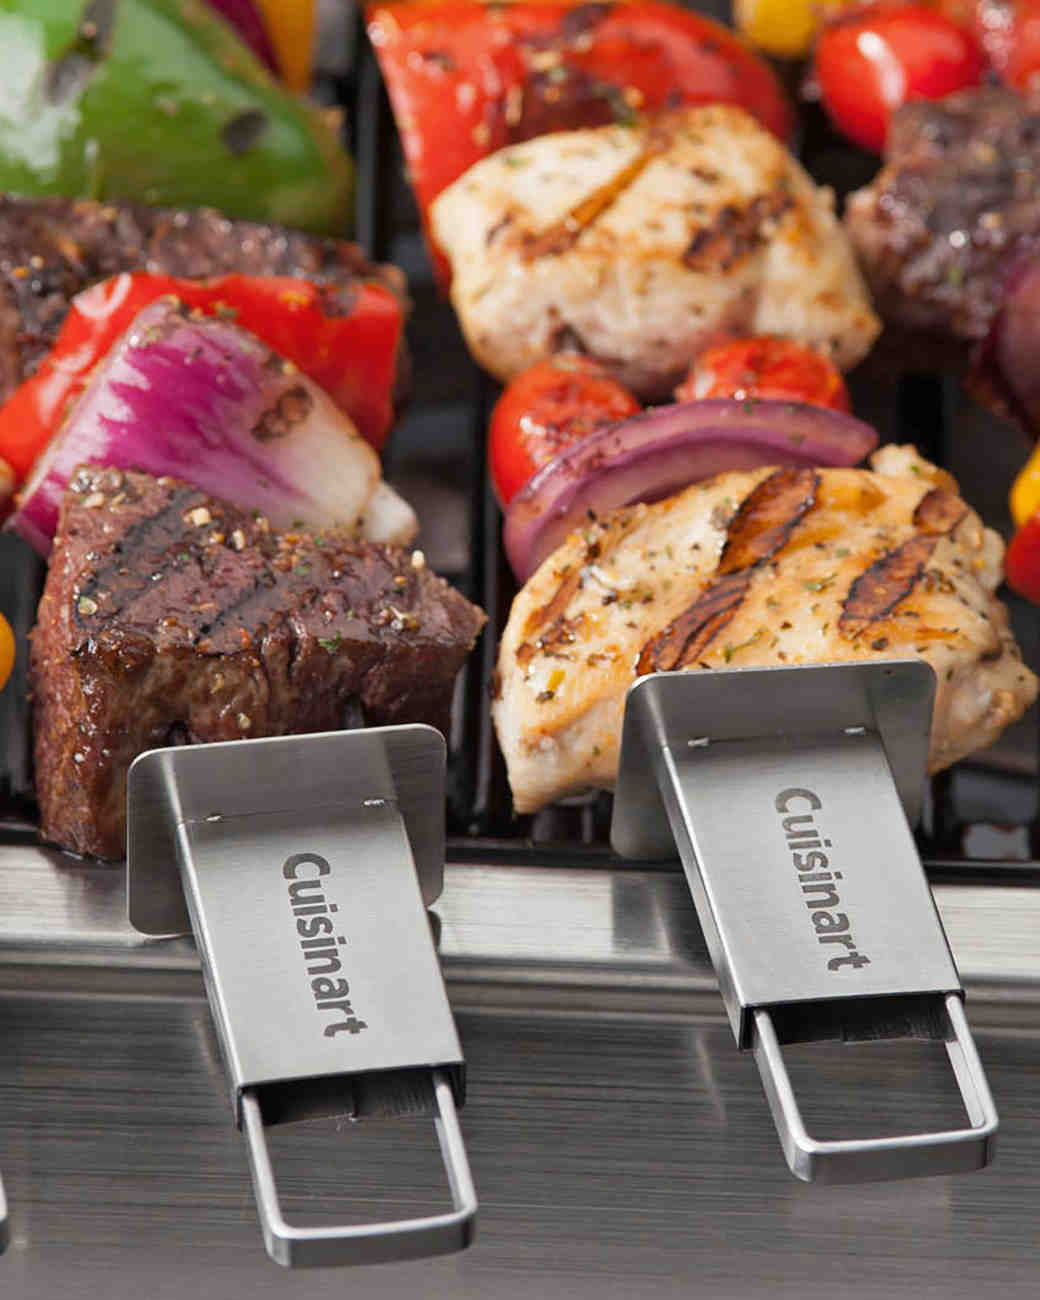 zola cuisinart grill sliding grilling skewer